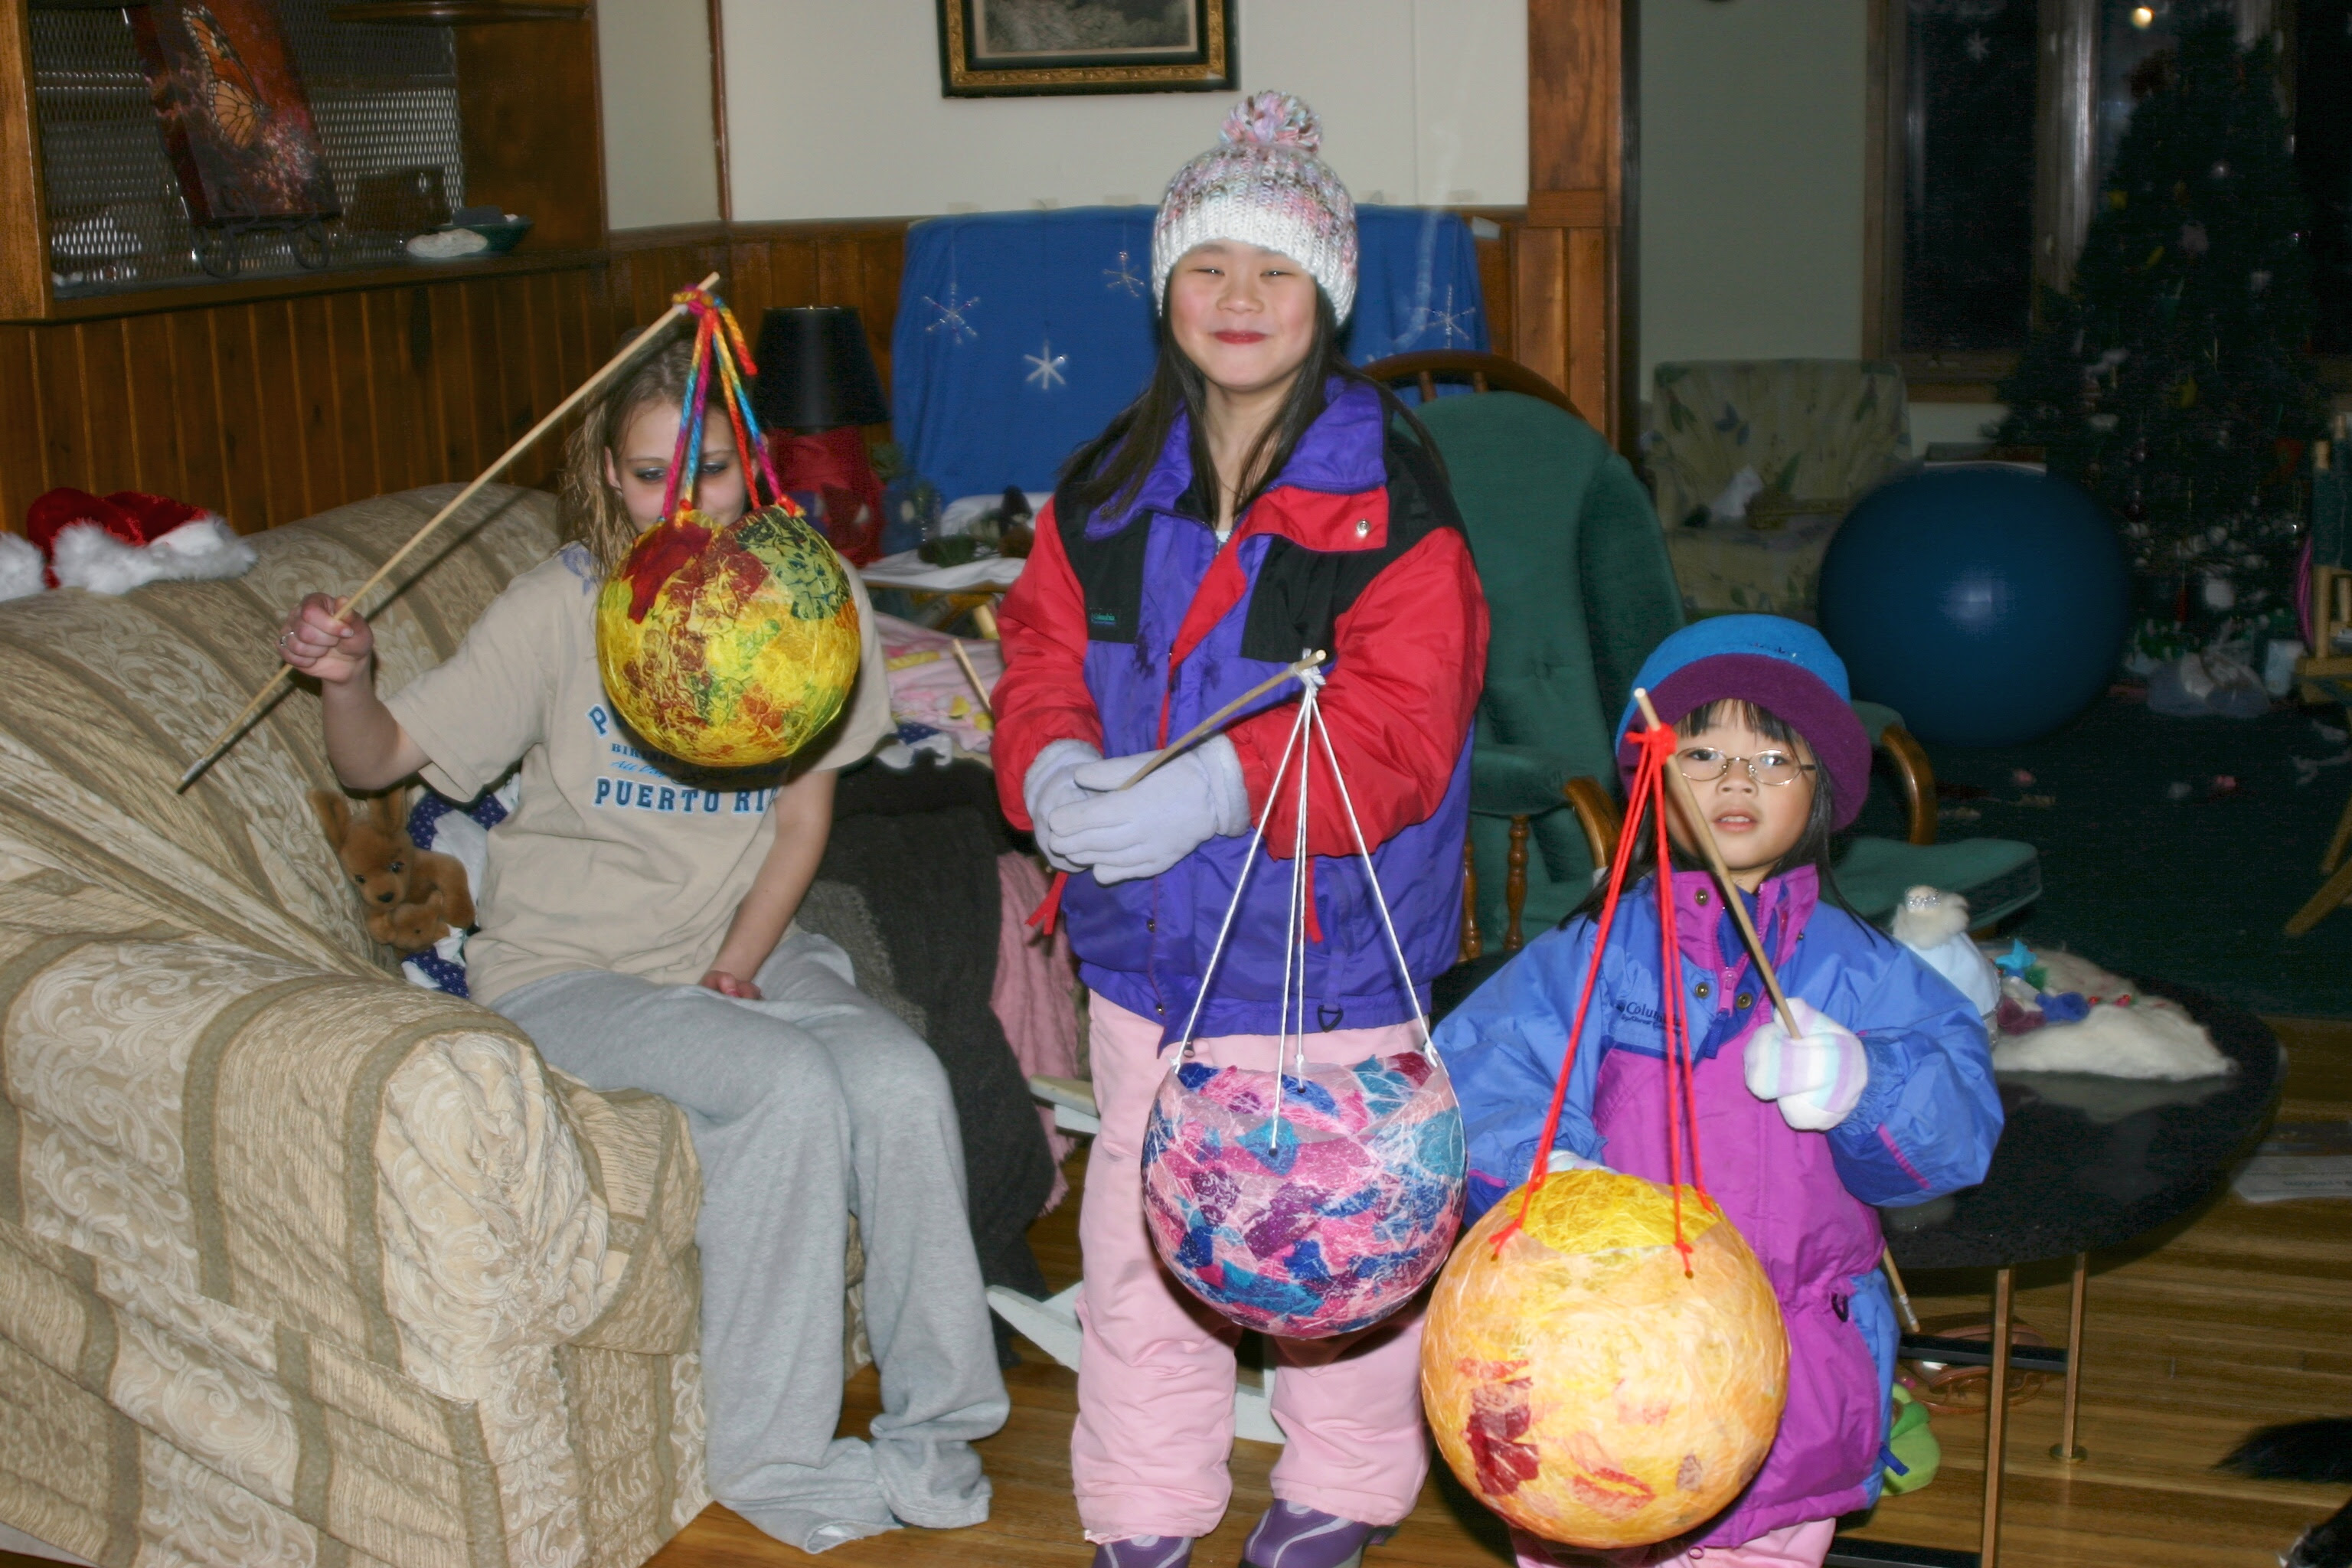 The Girls and their cousin Ashley with Balloon Lanterns